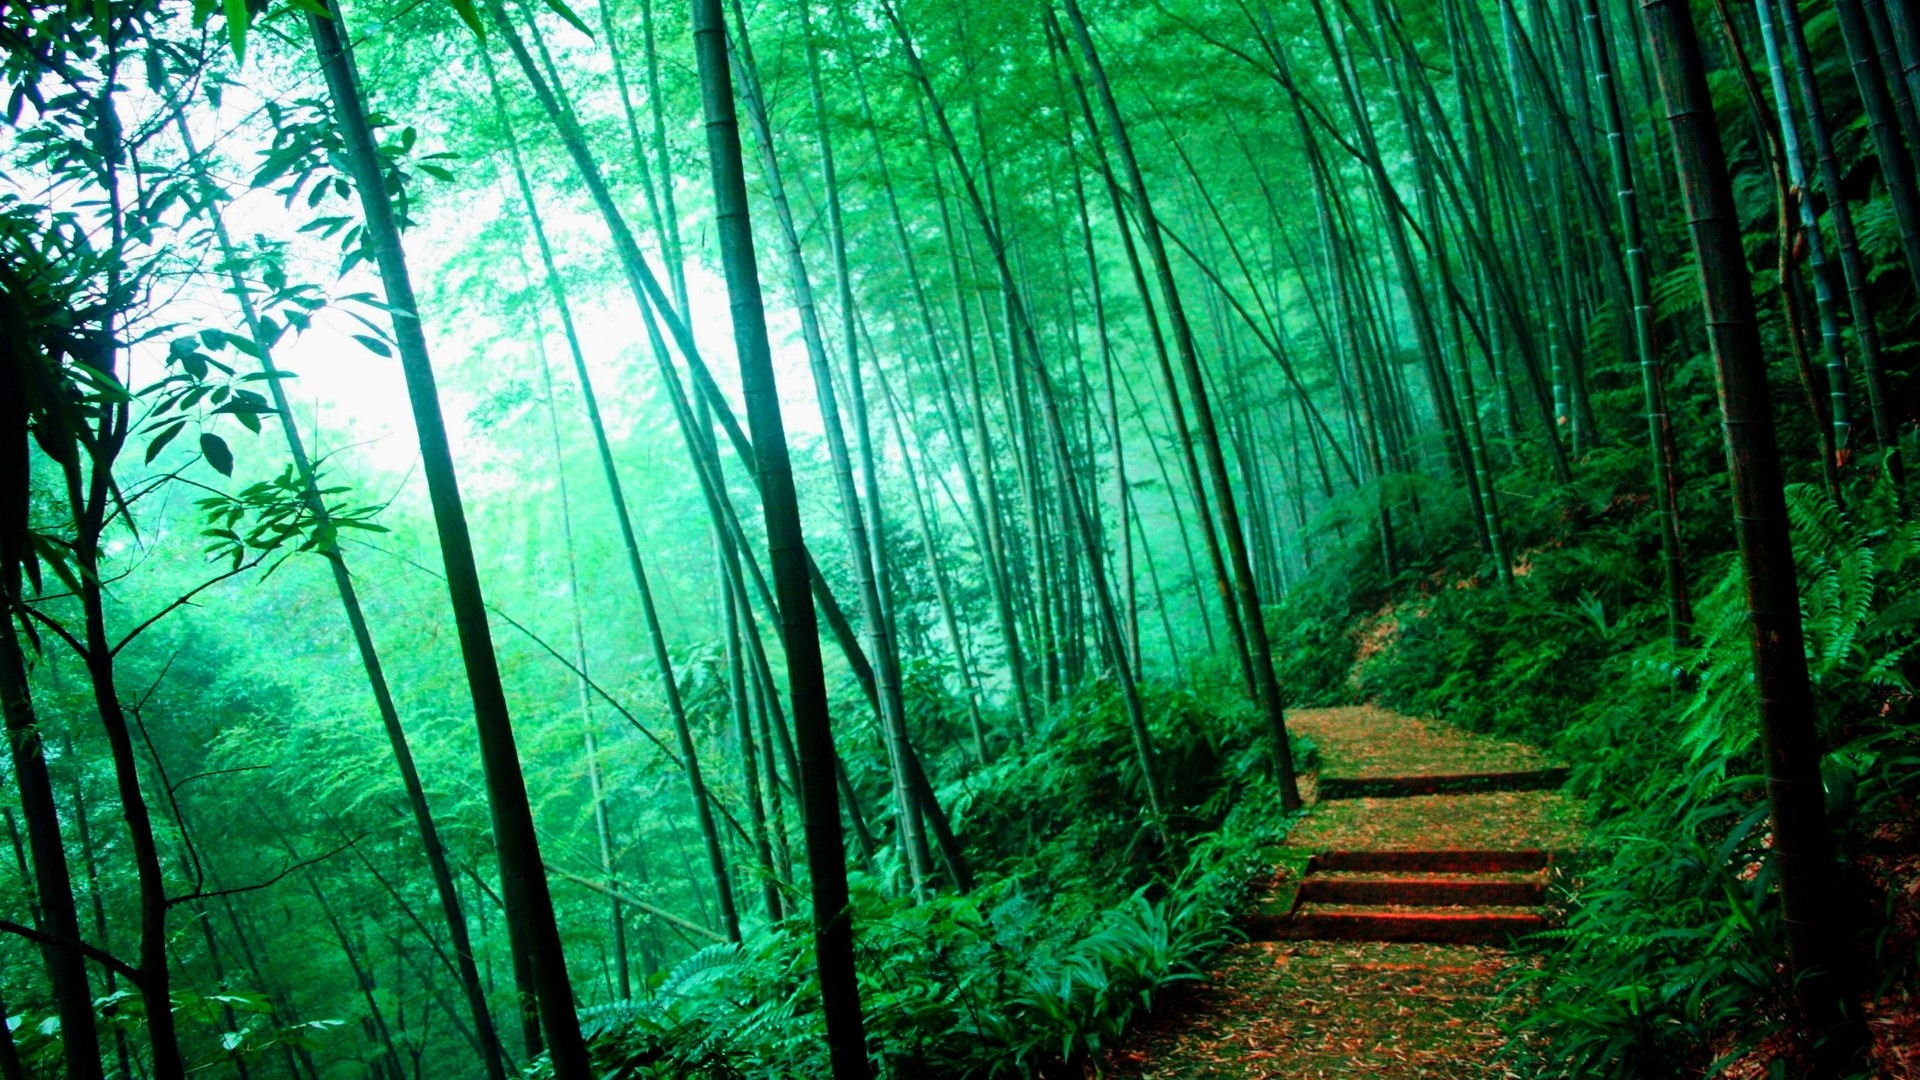 1920x1080 Bamboo Forest - Google Search